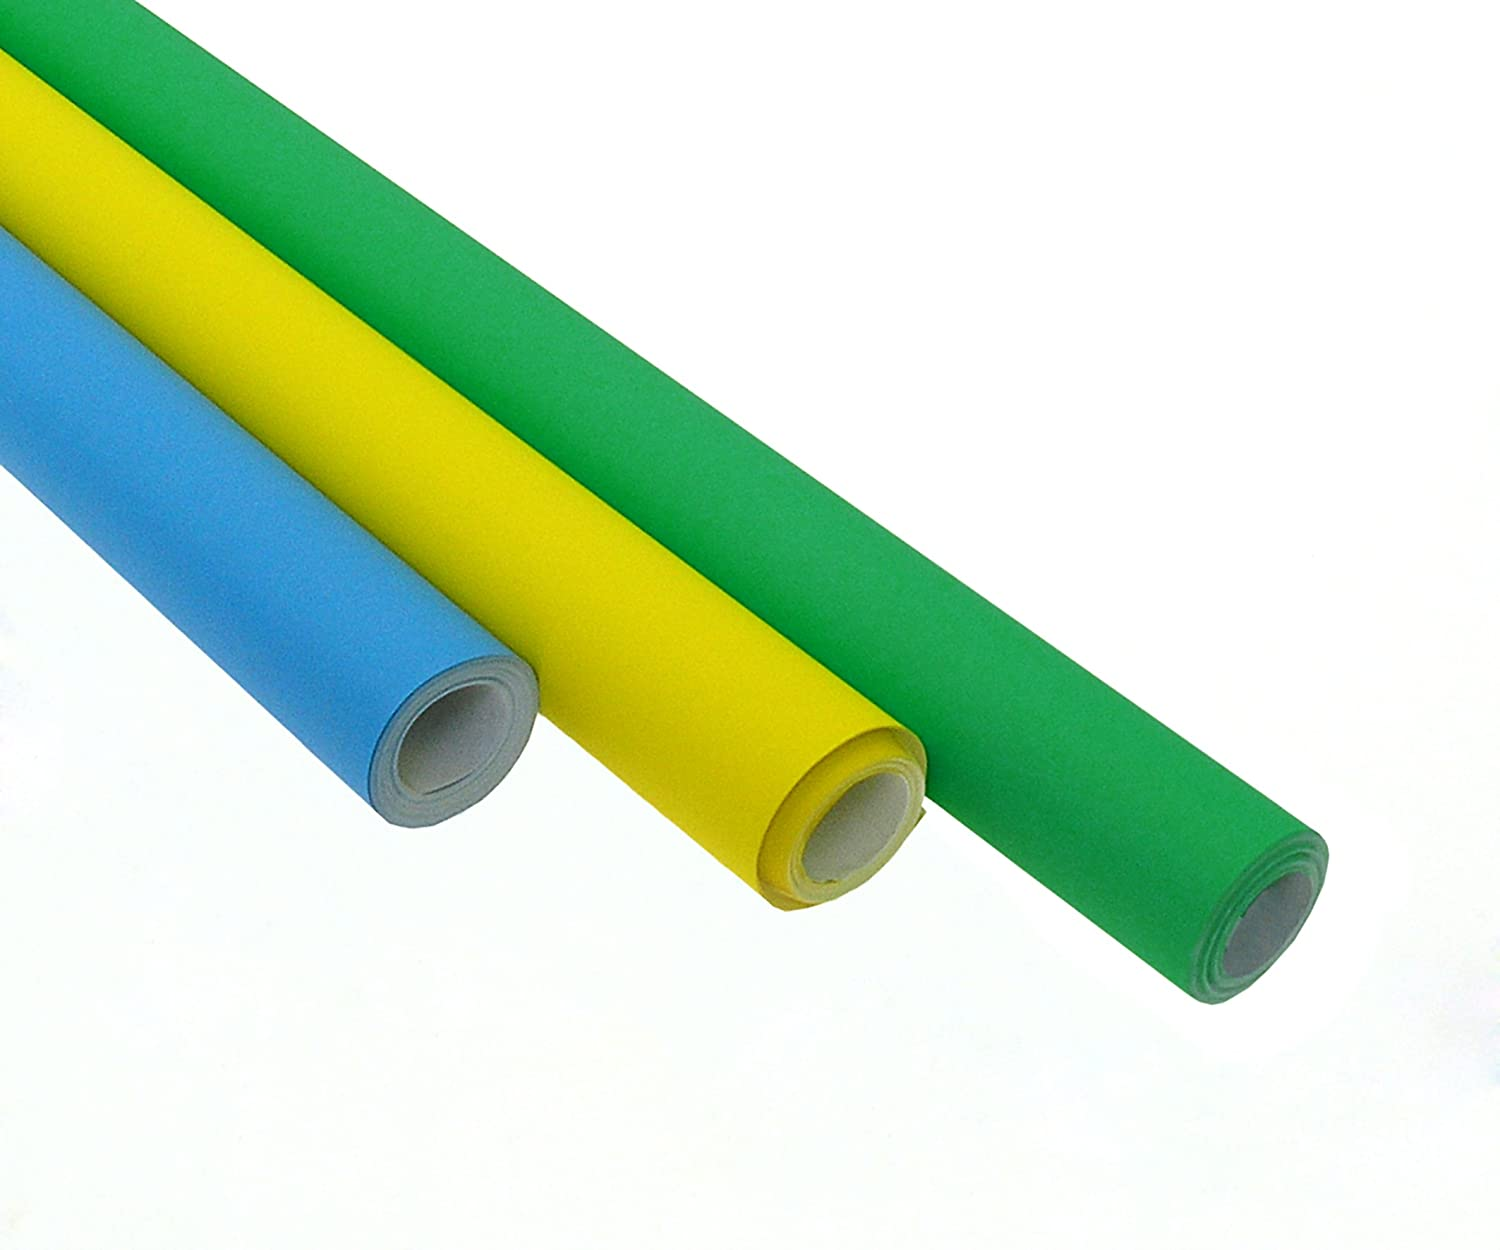 Poster paper assortment blue green and yellow 3 rolls of poster paper assortment blue green and yellow 3 rolls of vivid coloured poster paper each roll 760mm x 10m ideal for display schools classrooms jeuxipadfo Images